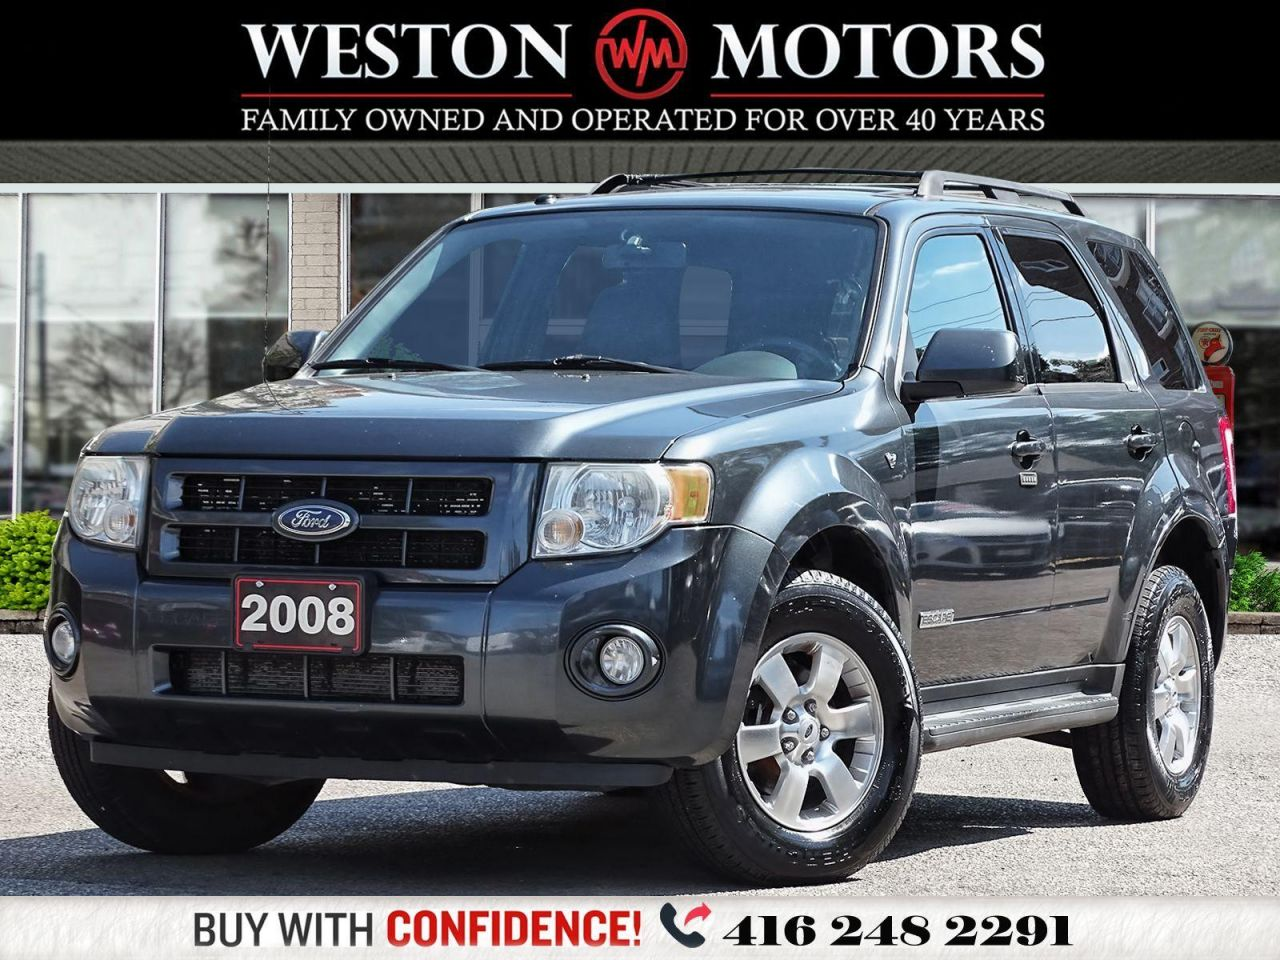 2008 Ford Escape LIMITED*AWD*LEATHER*SUNROOF*SOLD AS IS!!*